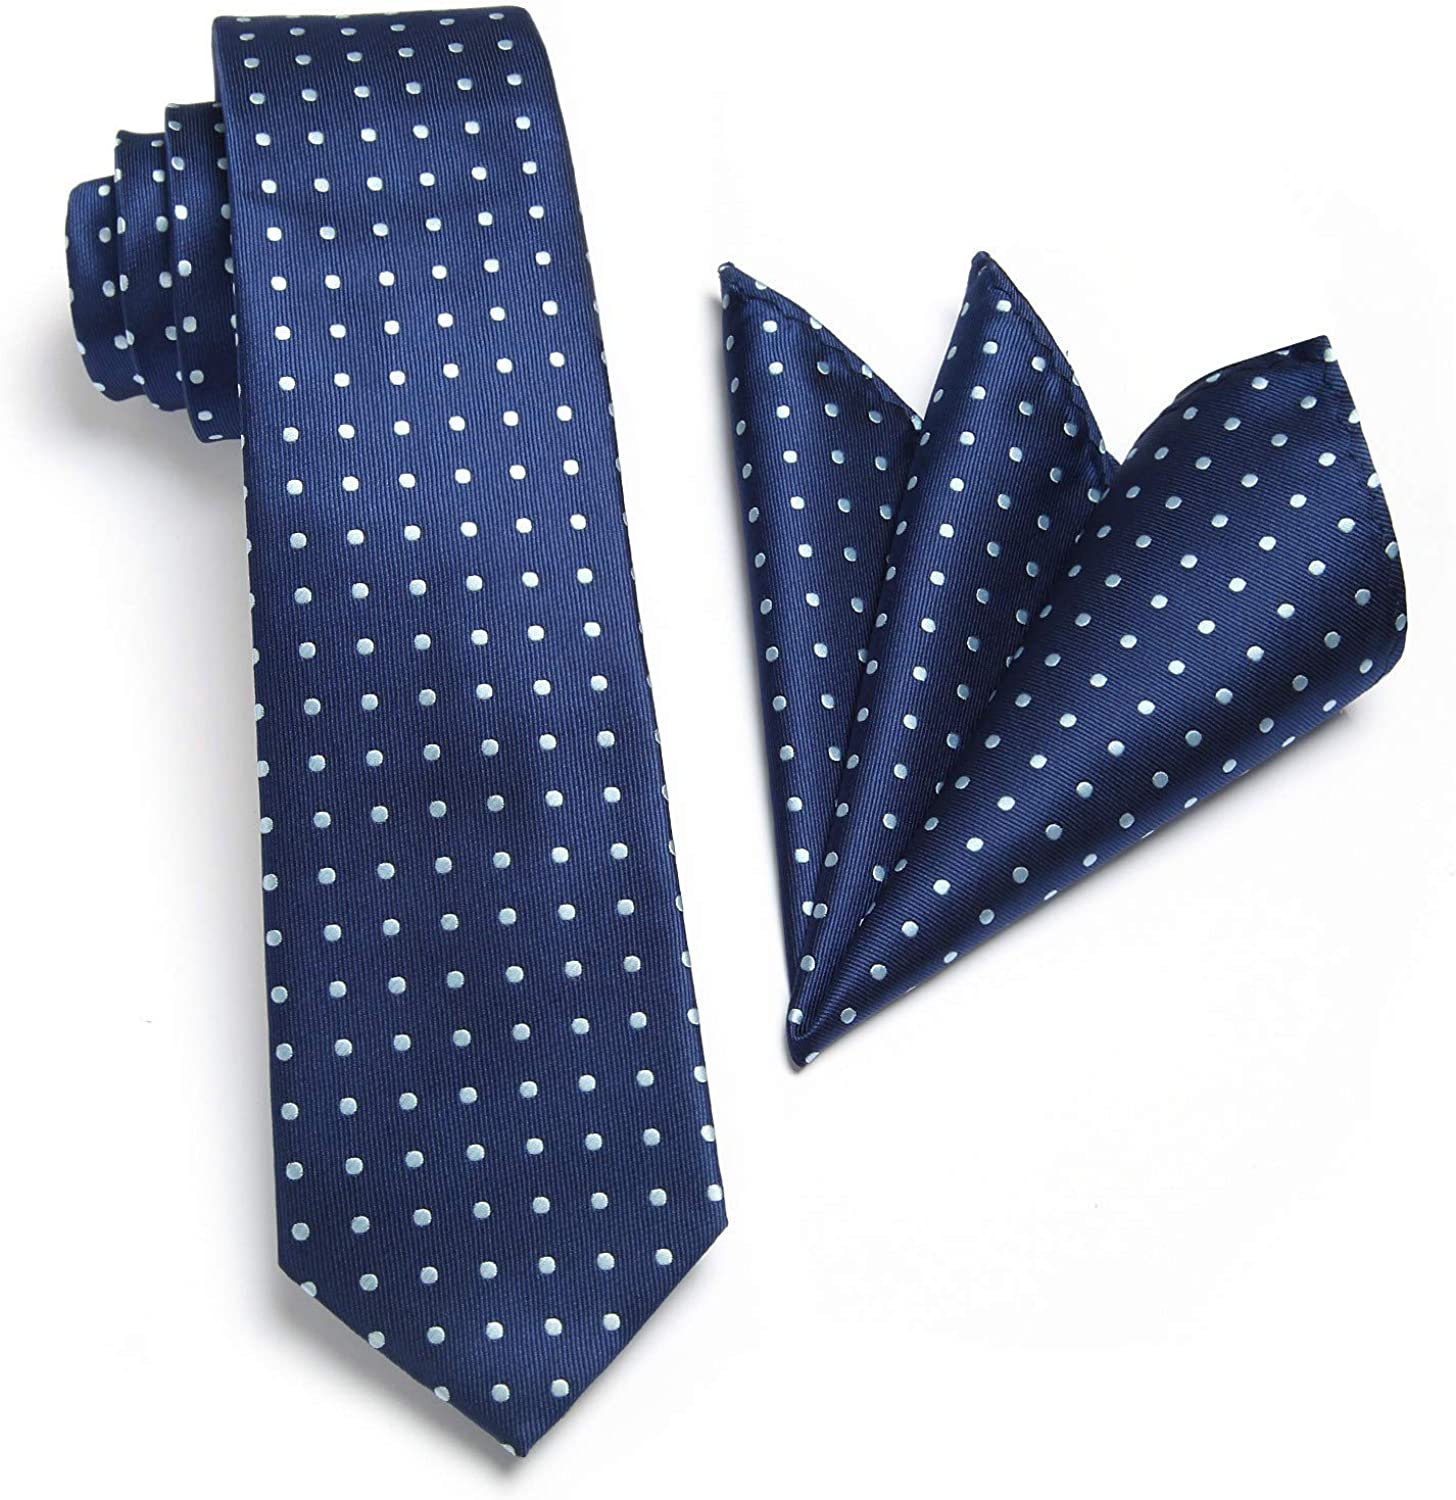 HISDERN Handmade Tie 2.75 Inches Casual Skinny Neckties for Men with Pocket Square Set